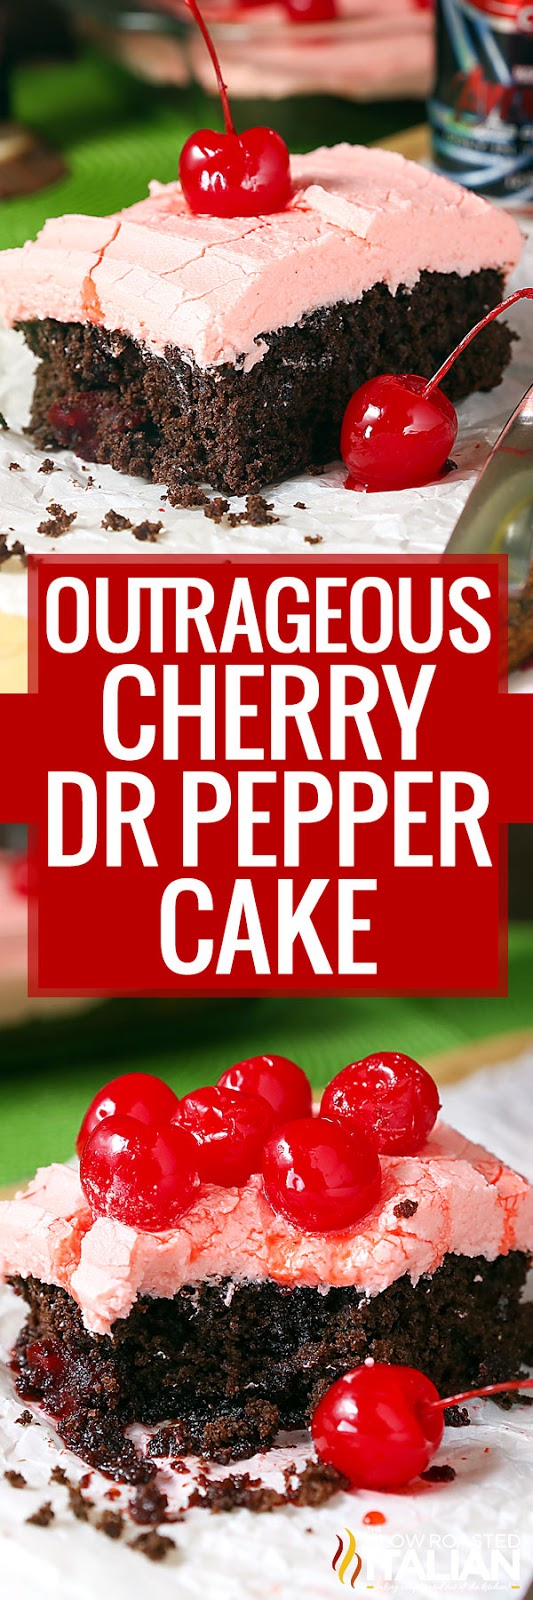 dr pepper cake outrageous cherry dr pepper cake with 3668